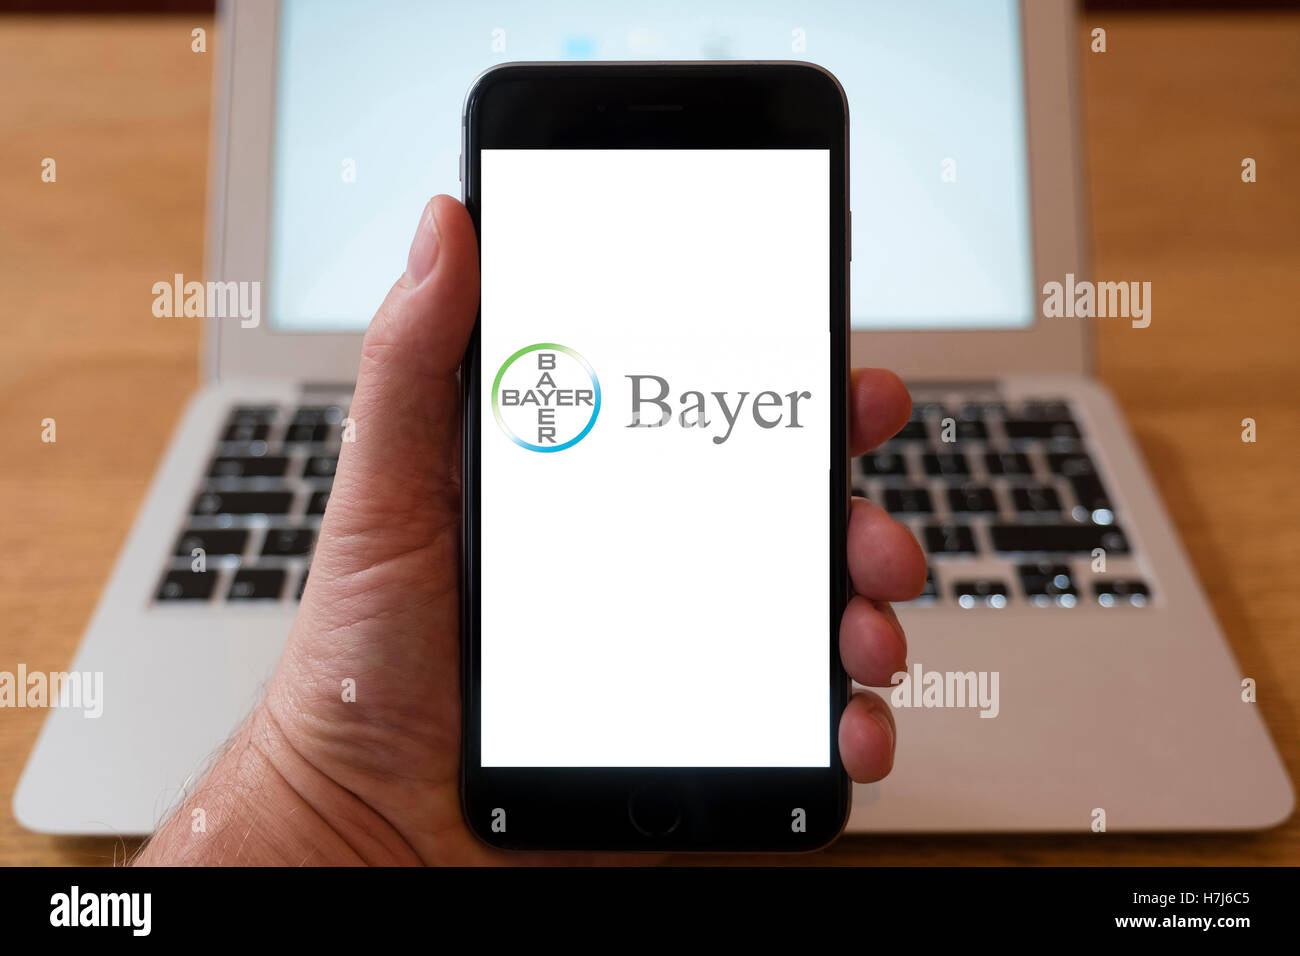 Using iPhone smart phone to display logo of Bayer pharmaceutical company - Stock Image